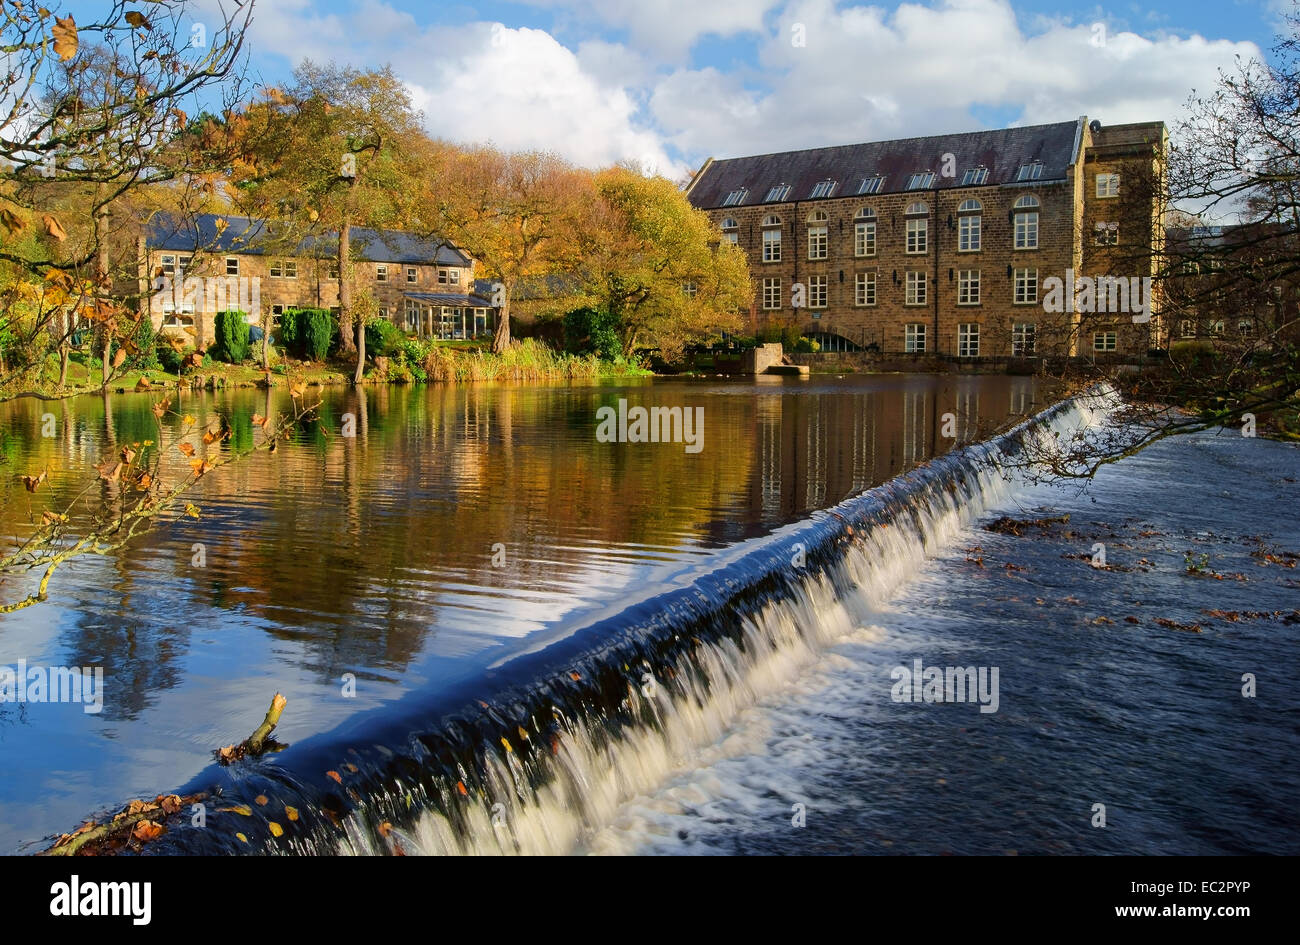 UK,Derbyshire,Peak District,Bamford Weir and Mill on The River Derwent - Stock Image